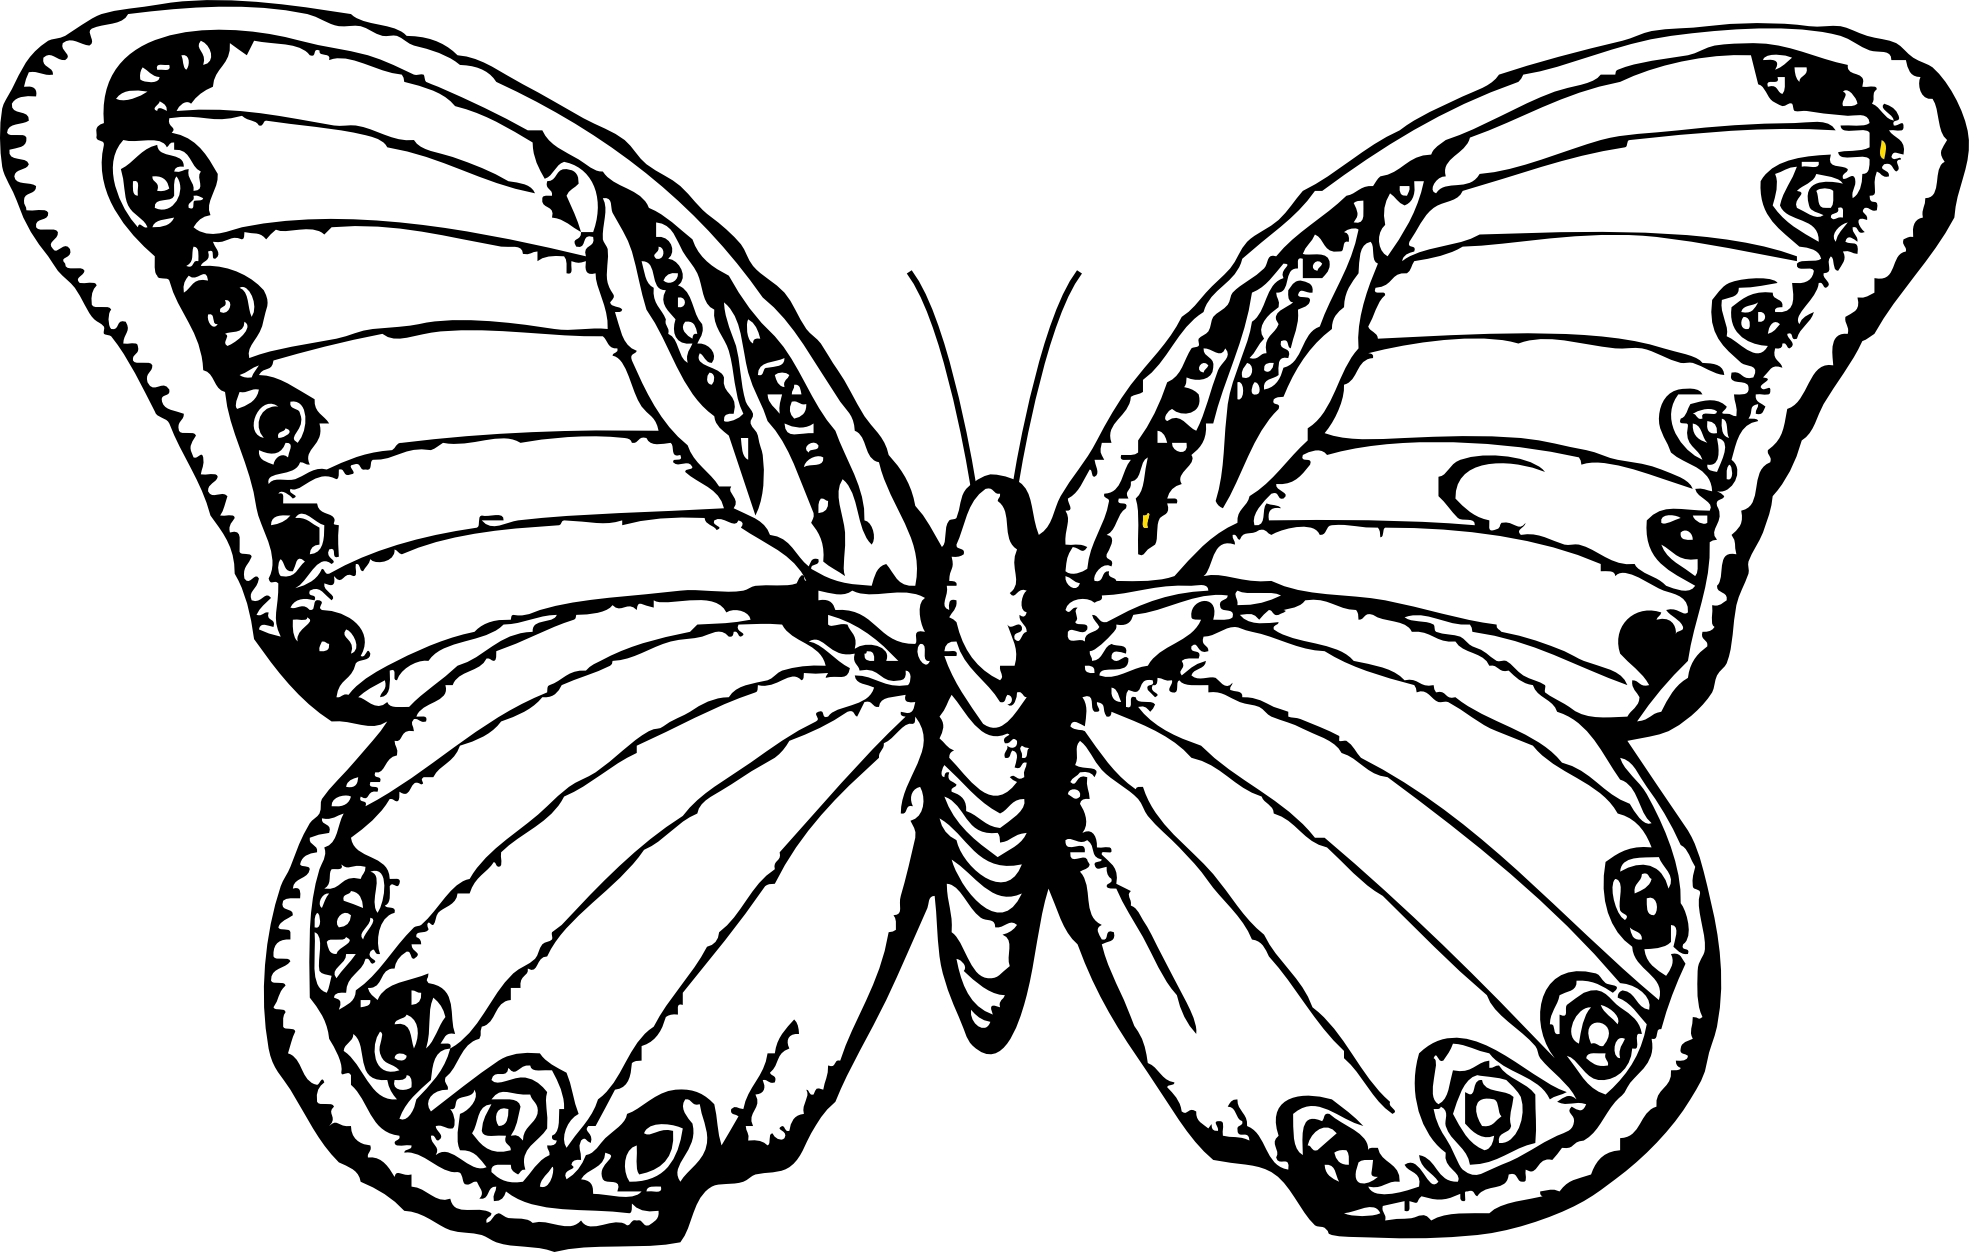 Butterfly clip art line drawing. Free drawings of butterflies